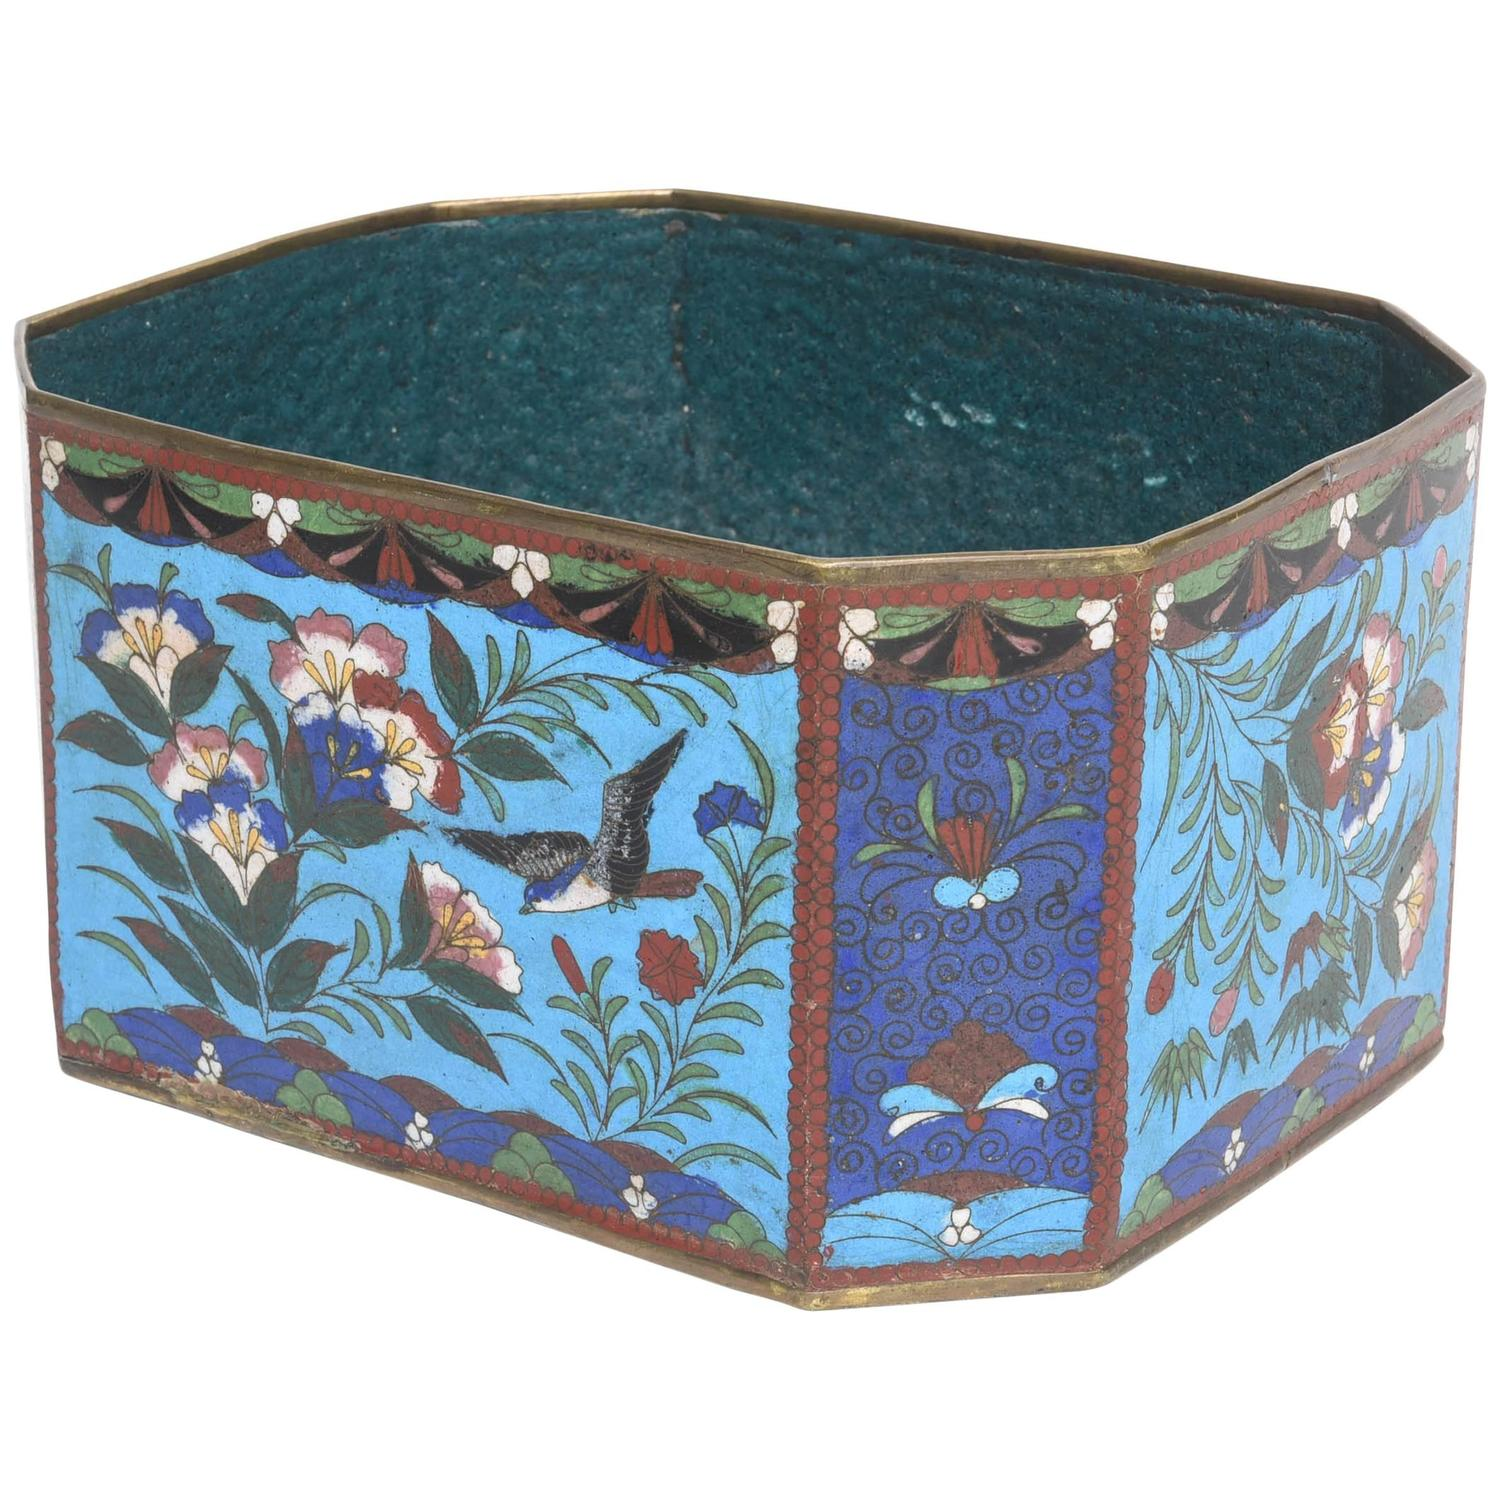 chinese cloisonn octagonal cachepot or box circa 1900. Black Bedroom Furniture Sets. Home Design Ideas